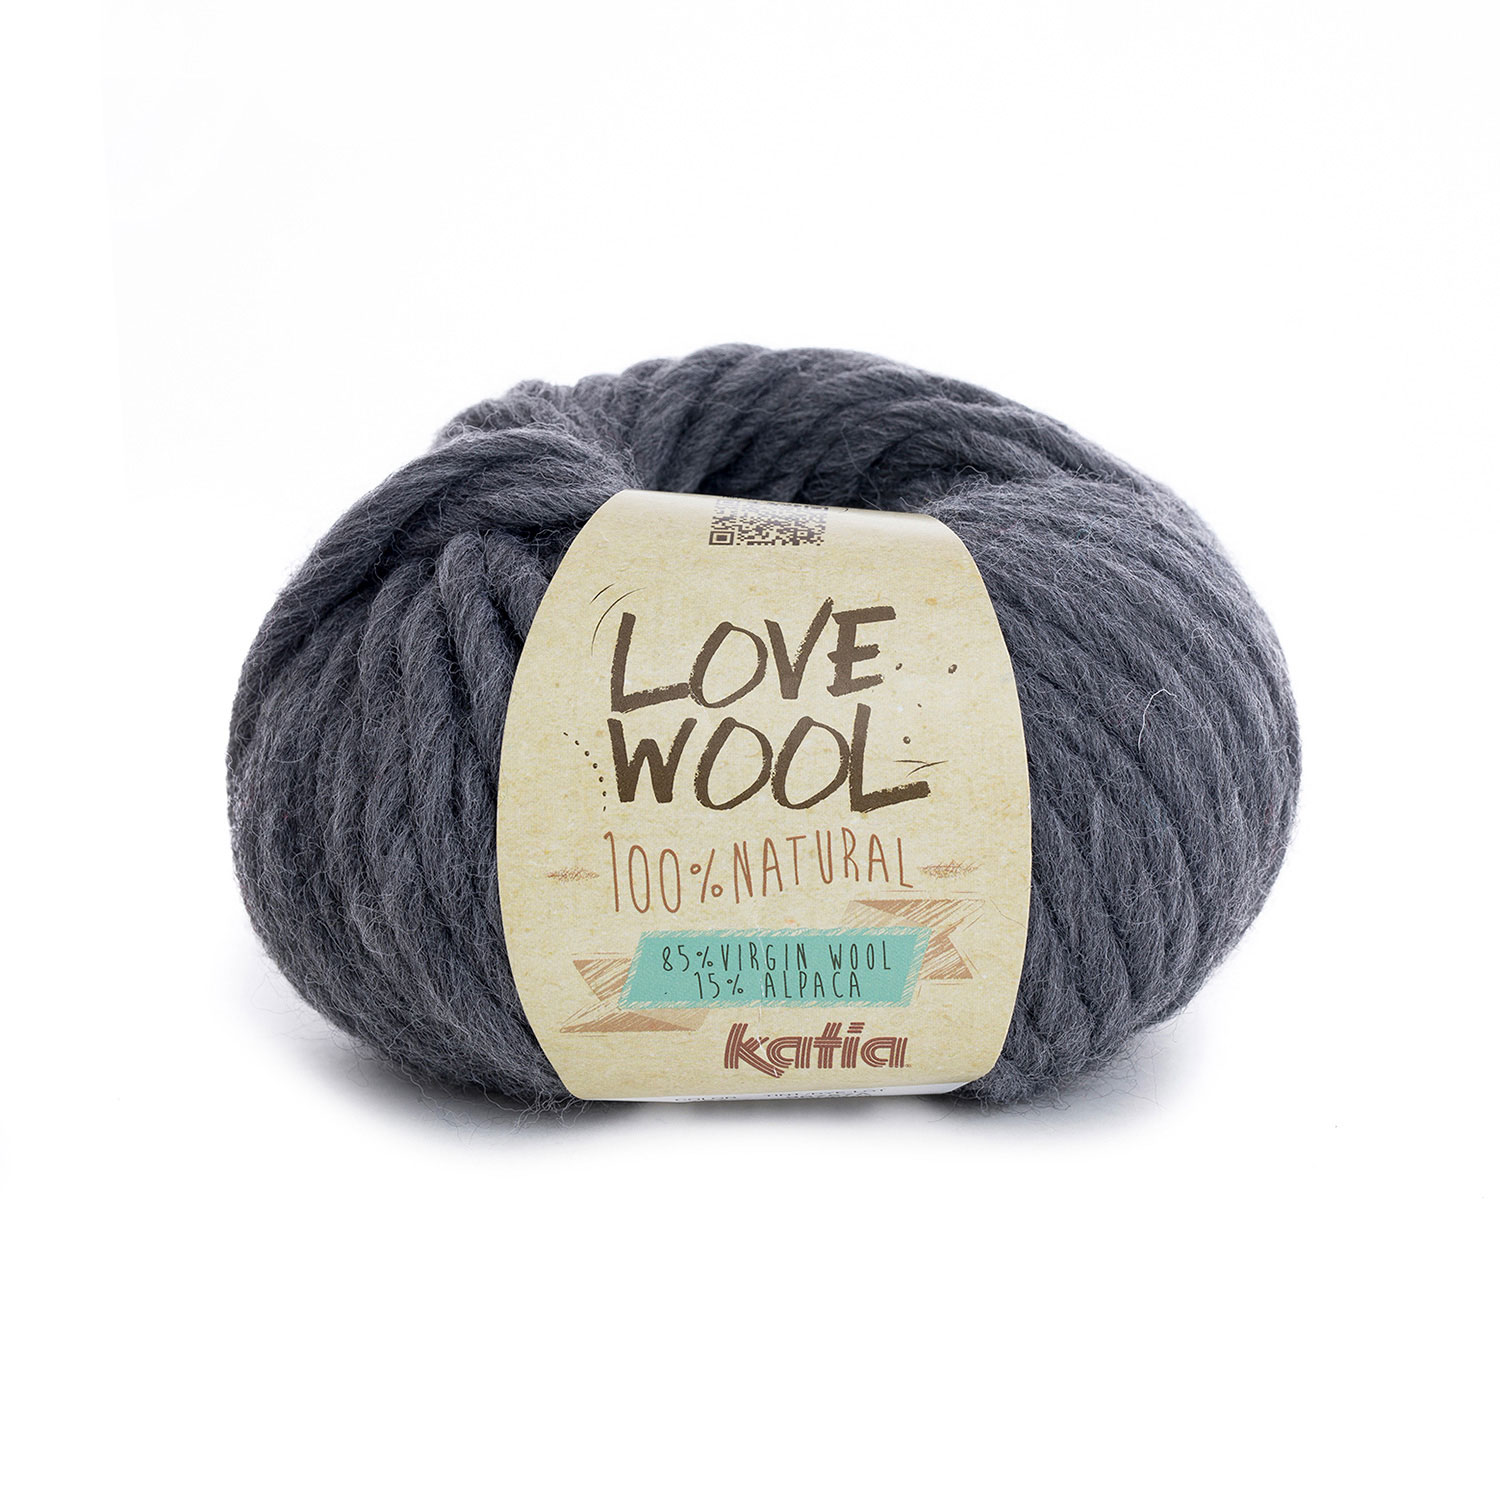 LOVE WOOL - Autumn / Winter - yarns | Katia.com